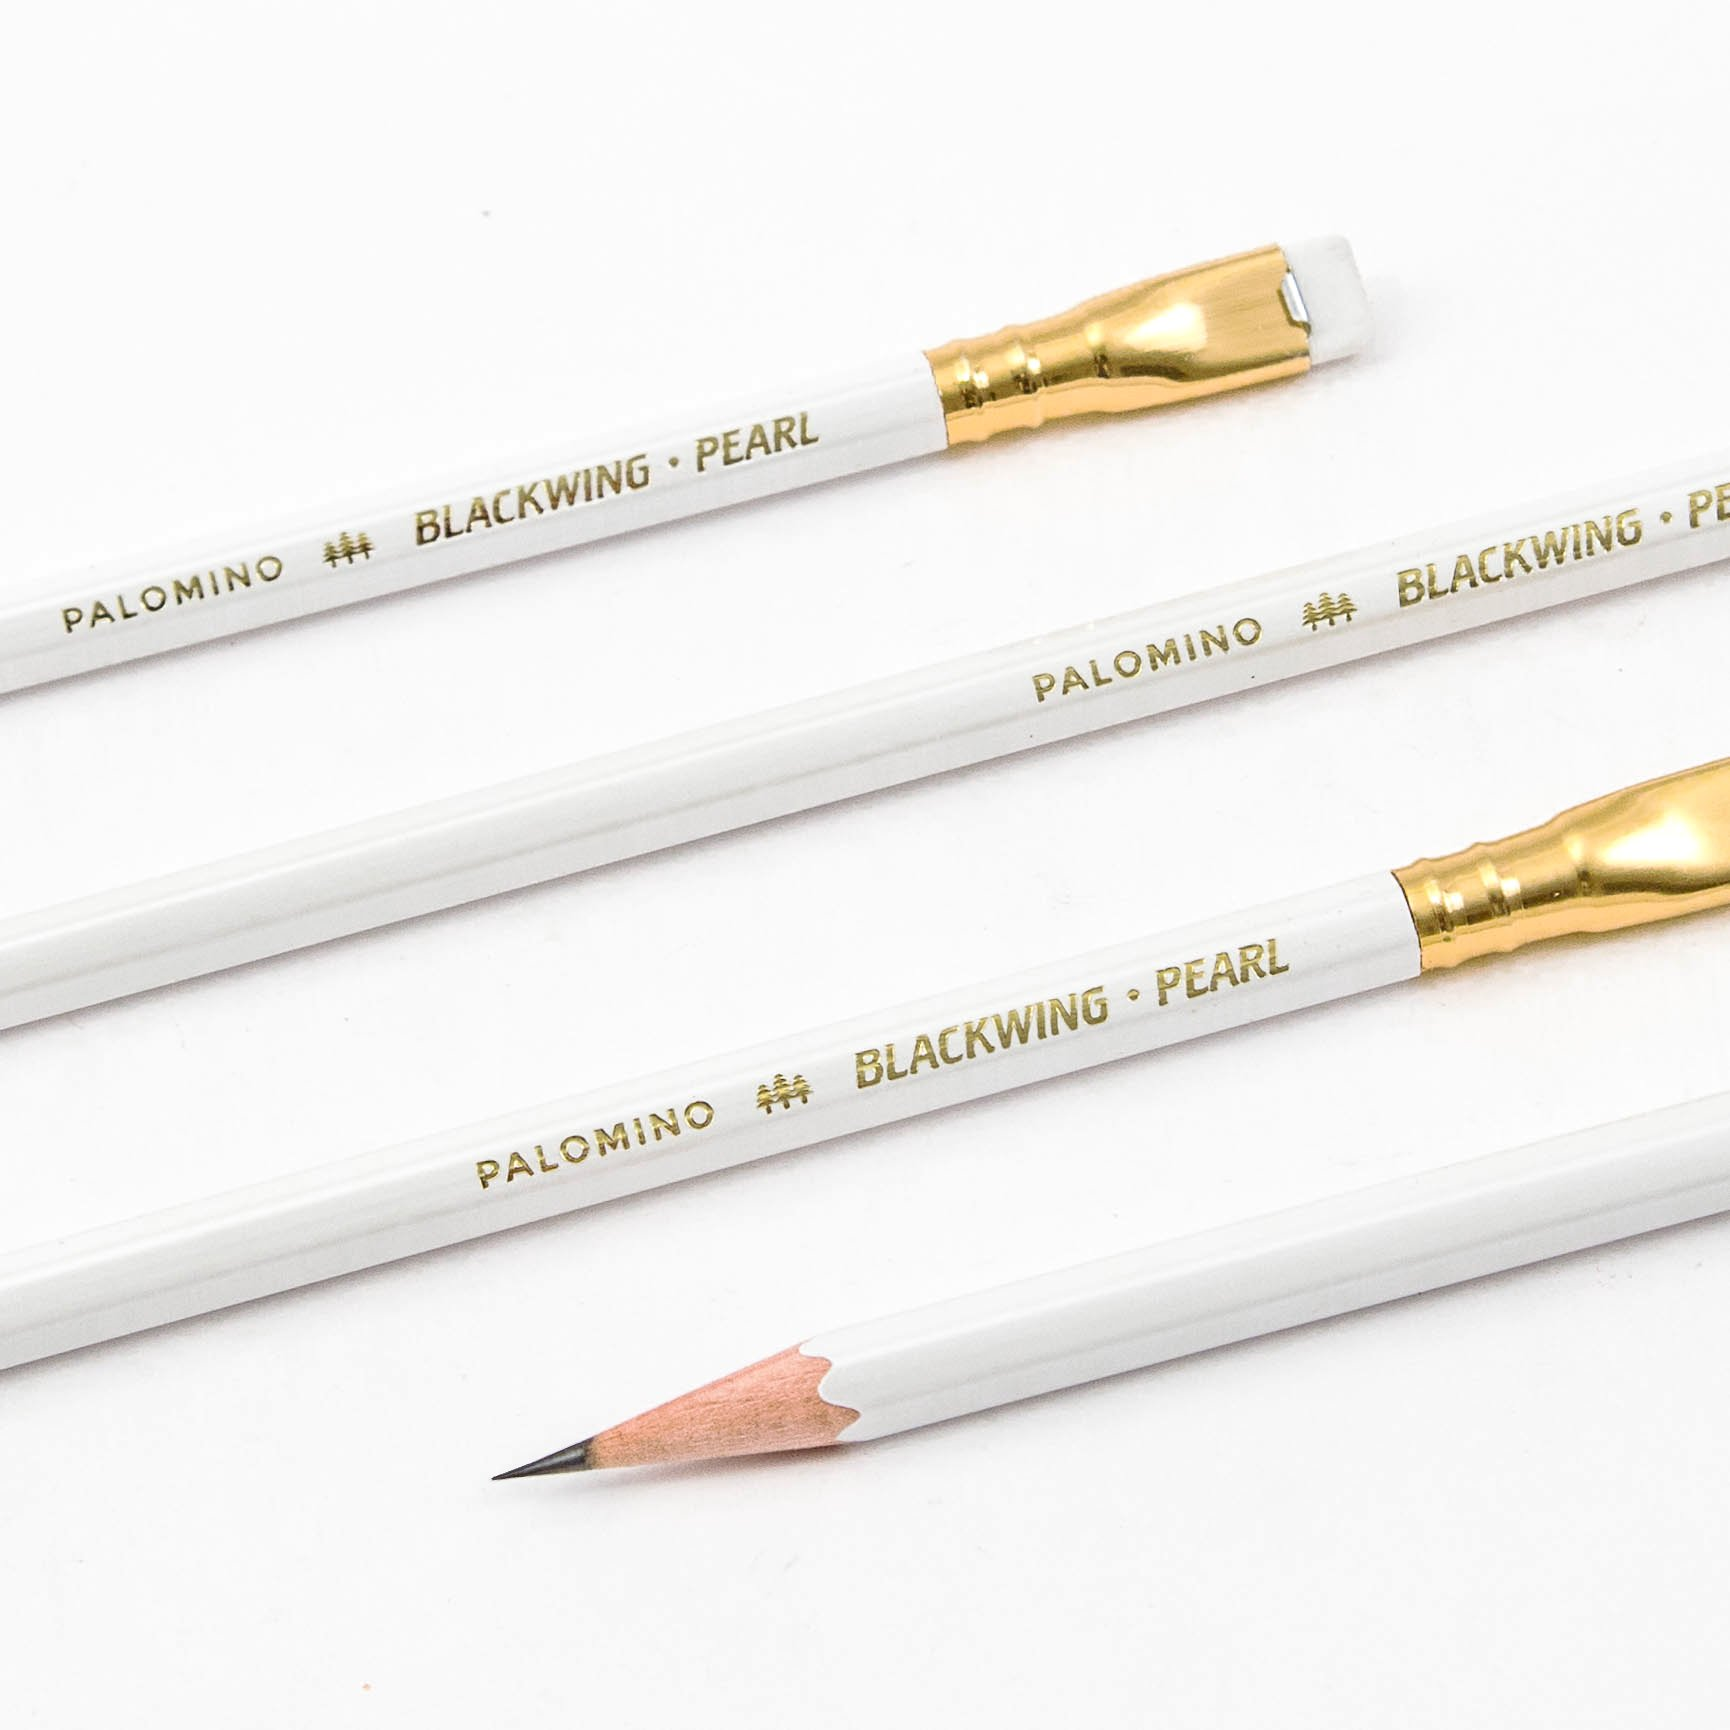 Palomino Blackwing Pearl Pencils - 12 Pack by Blackwing (Image #1)